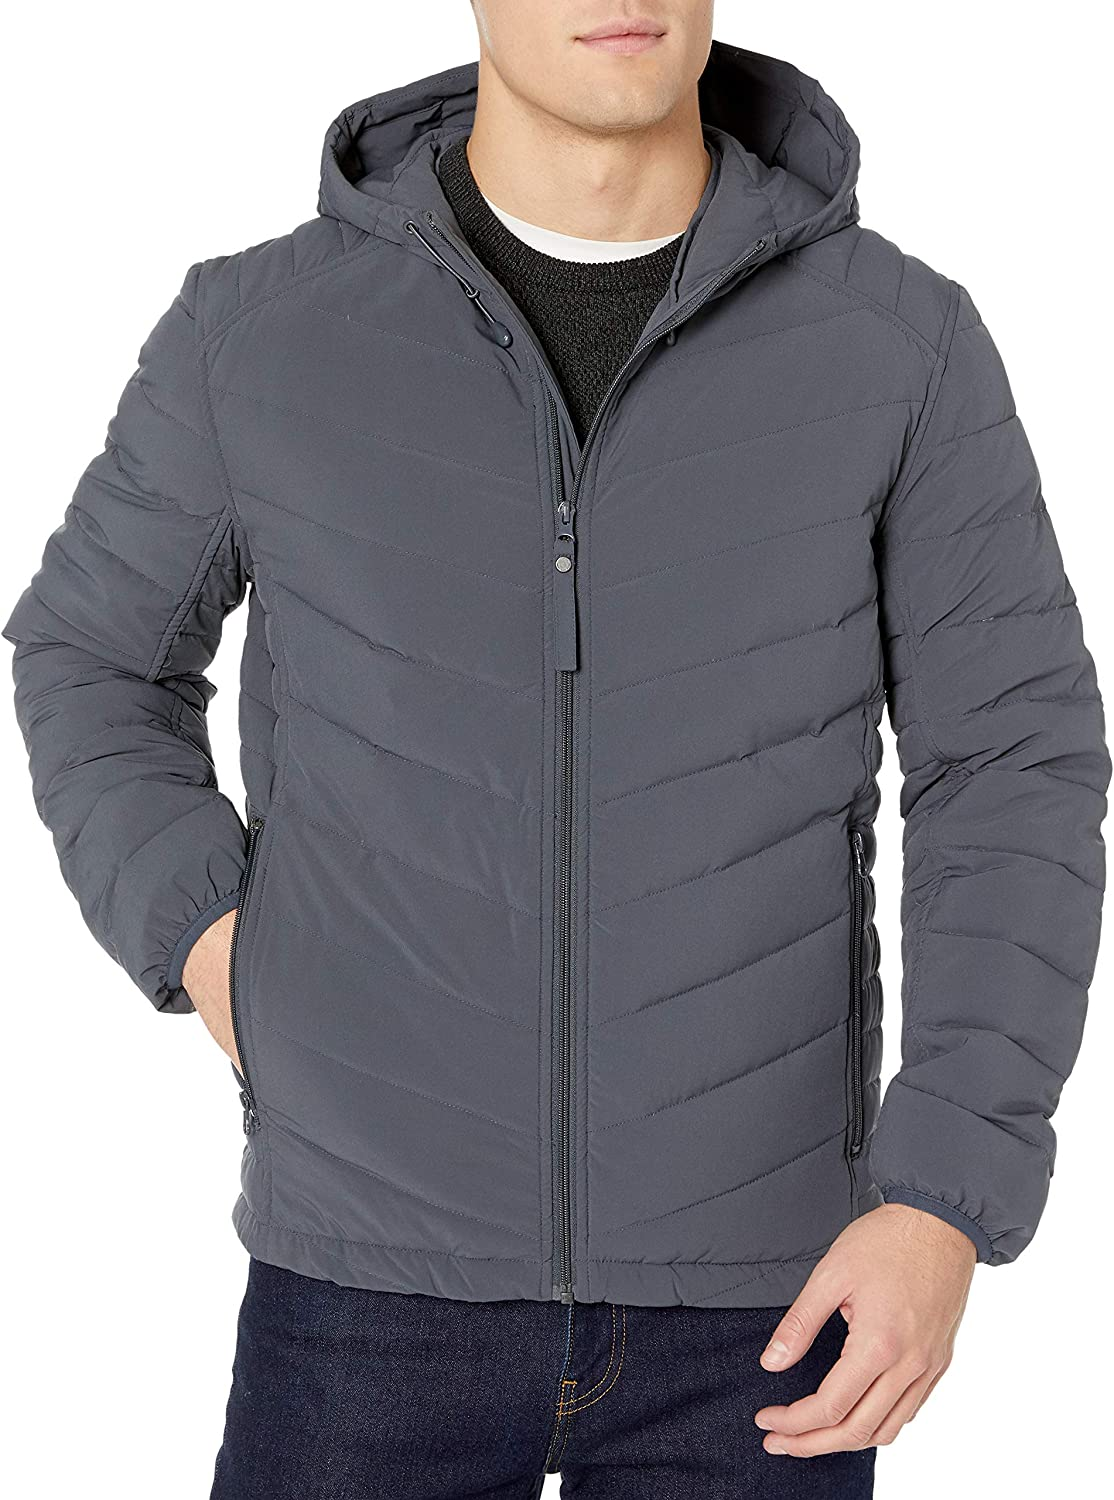 Marc New York by Andrew Marc Mens Delavan Ultra Stretch Packable Hooded Jacket